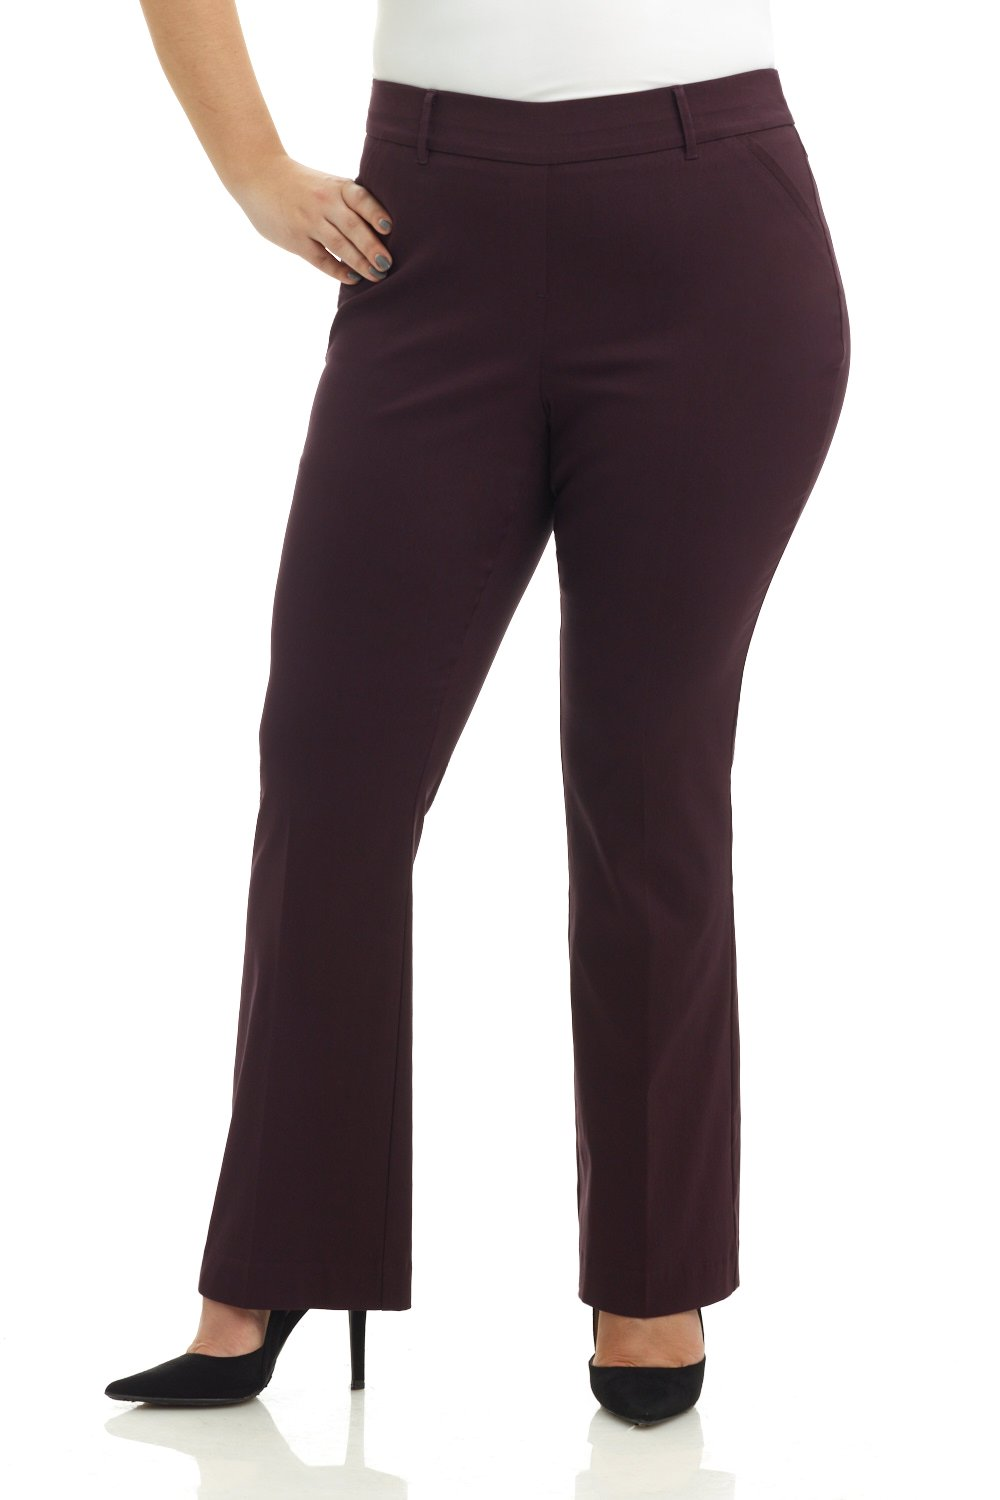 Rekucci Curvy Woman Ease in to Comfort Fit Barely Bootcut Plus Size Pant (16WSHORT,Cassis)